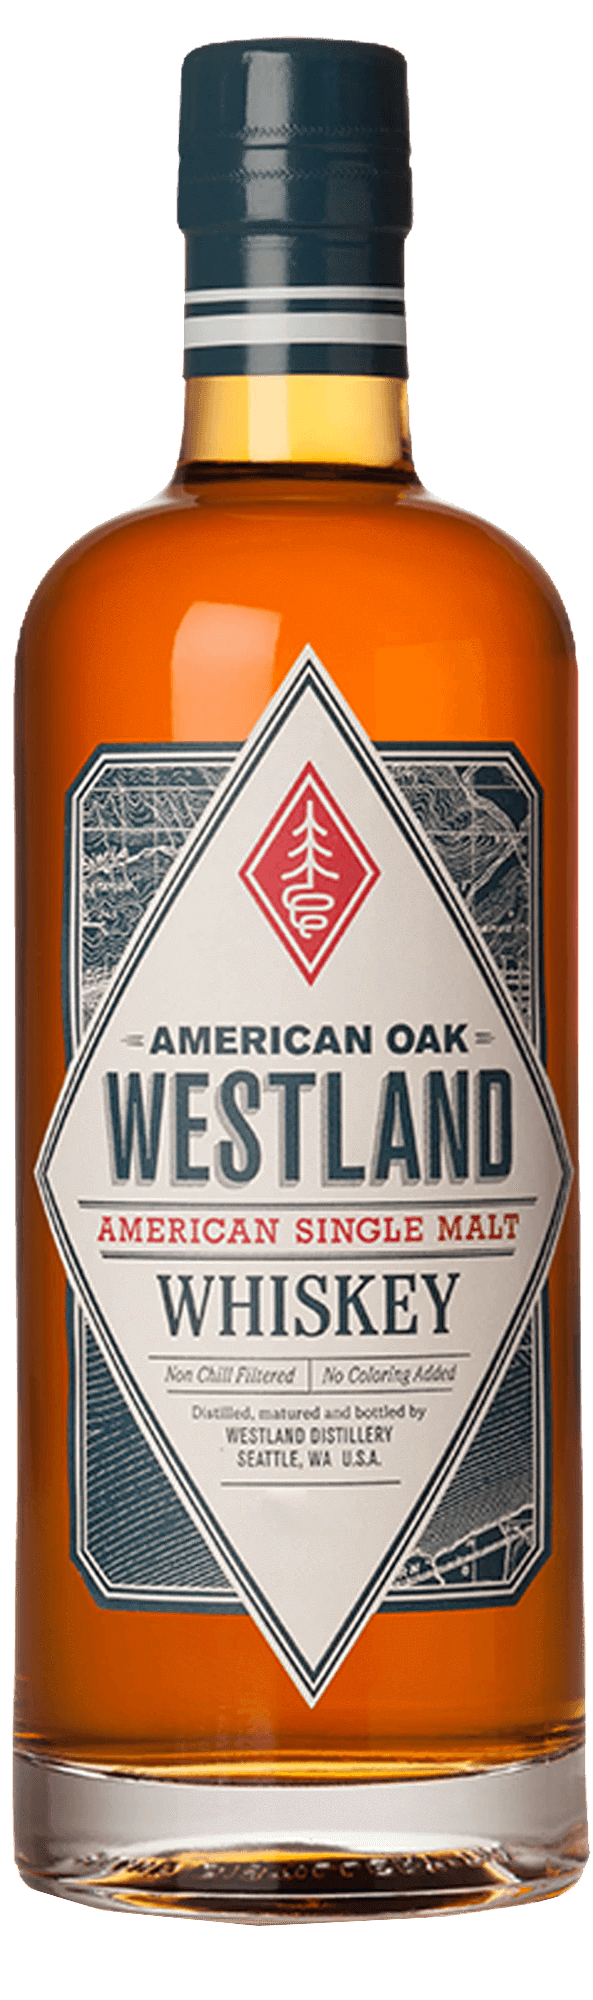 Westland American Whisky (700mL)